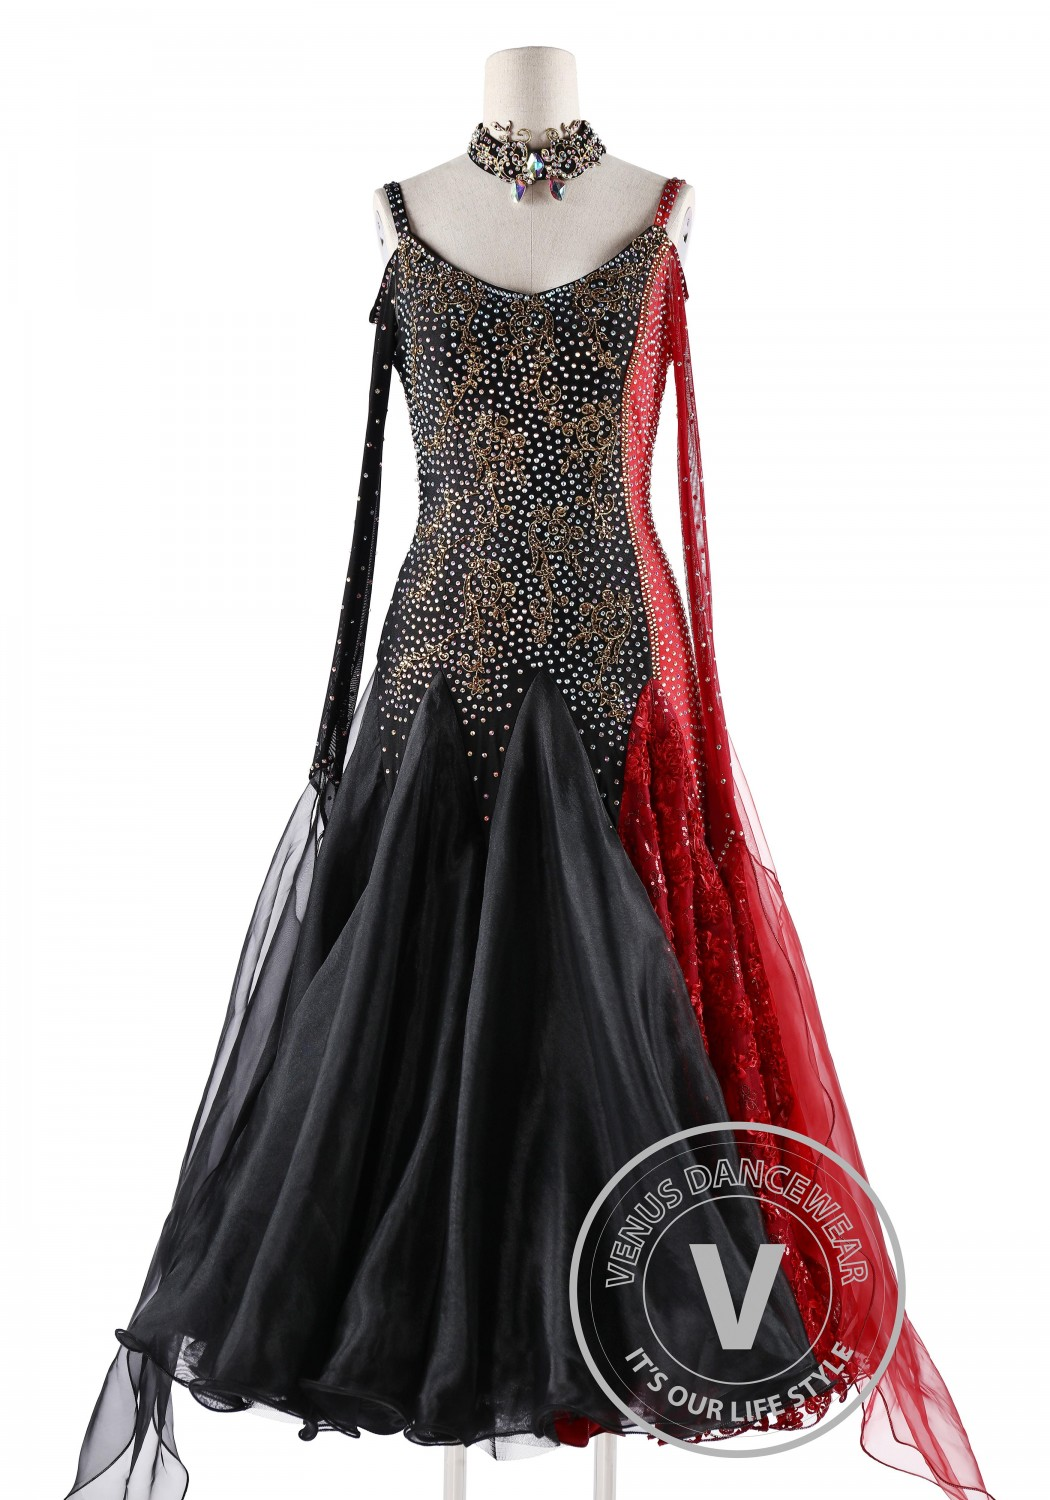 Le Vampire Competition Waltz Swing Tango Dance Dress